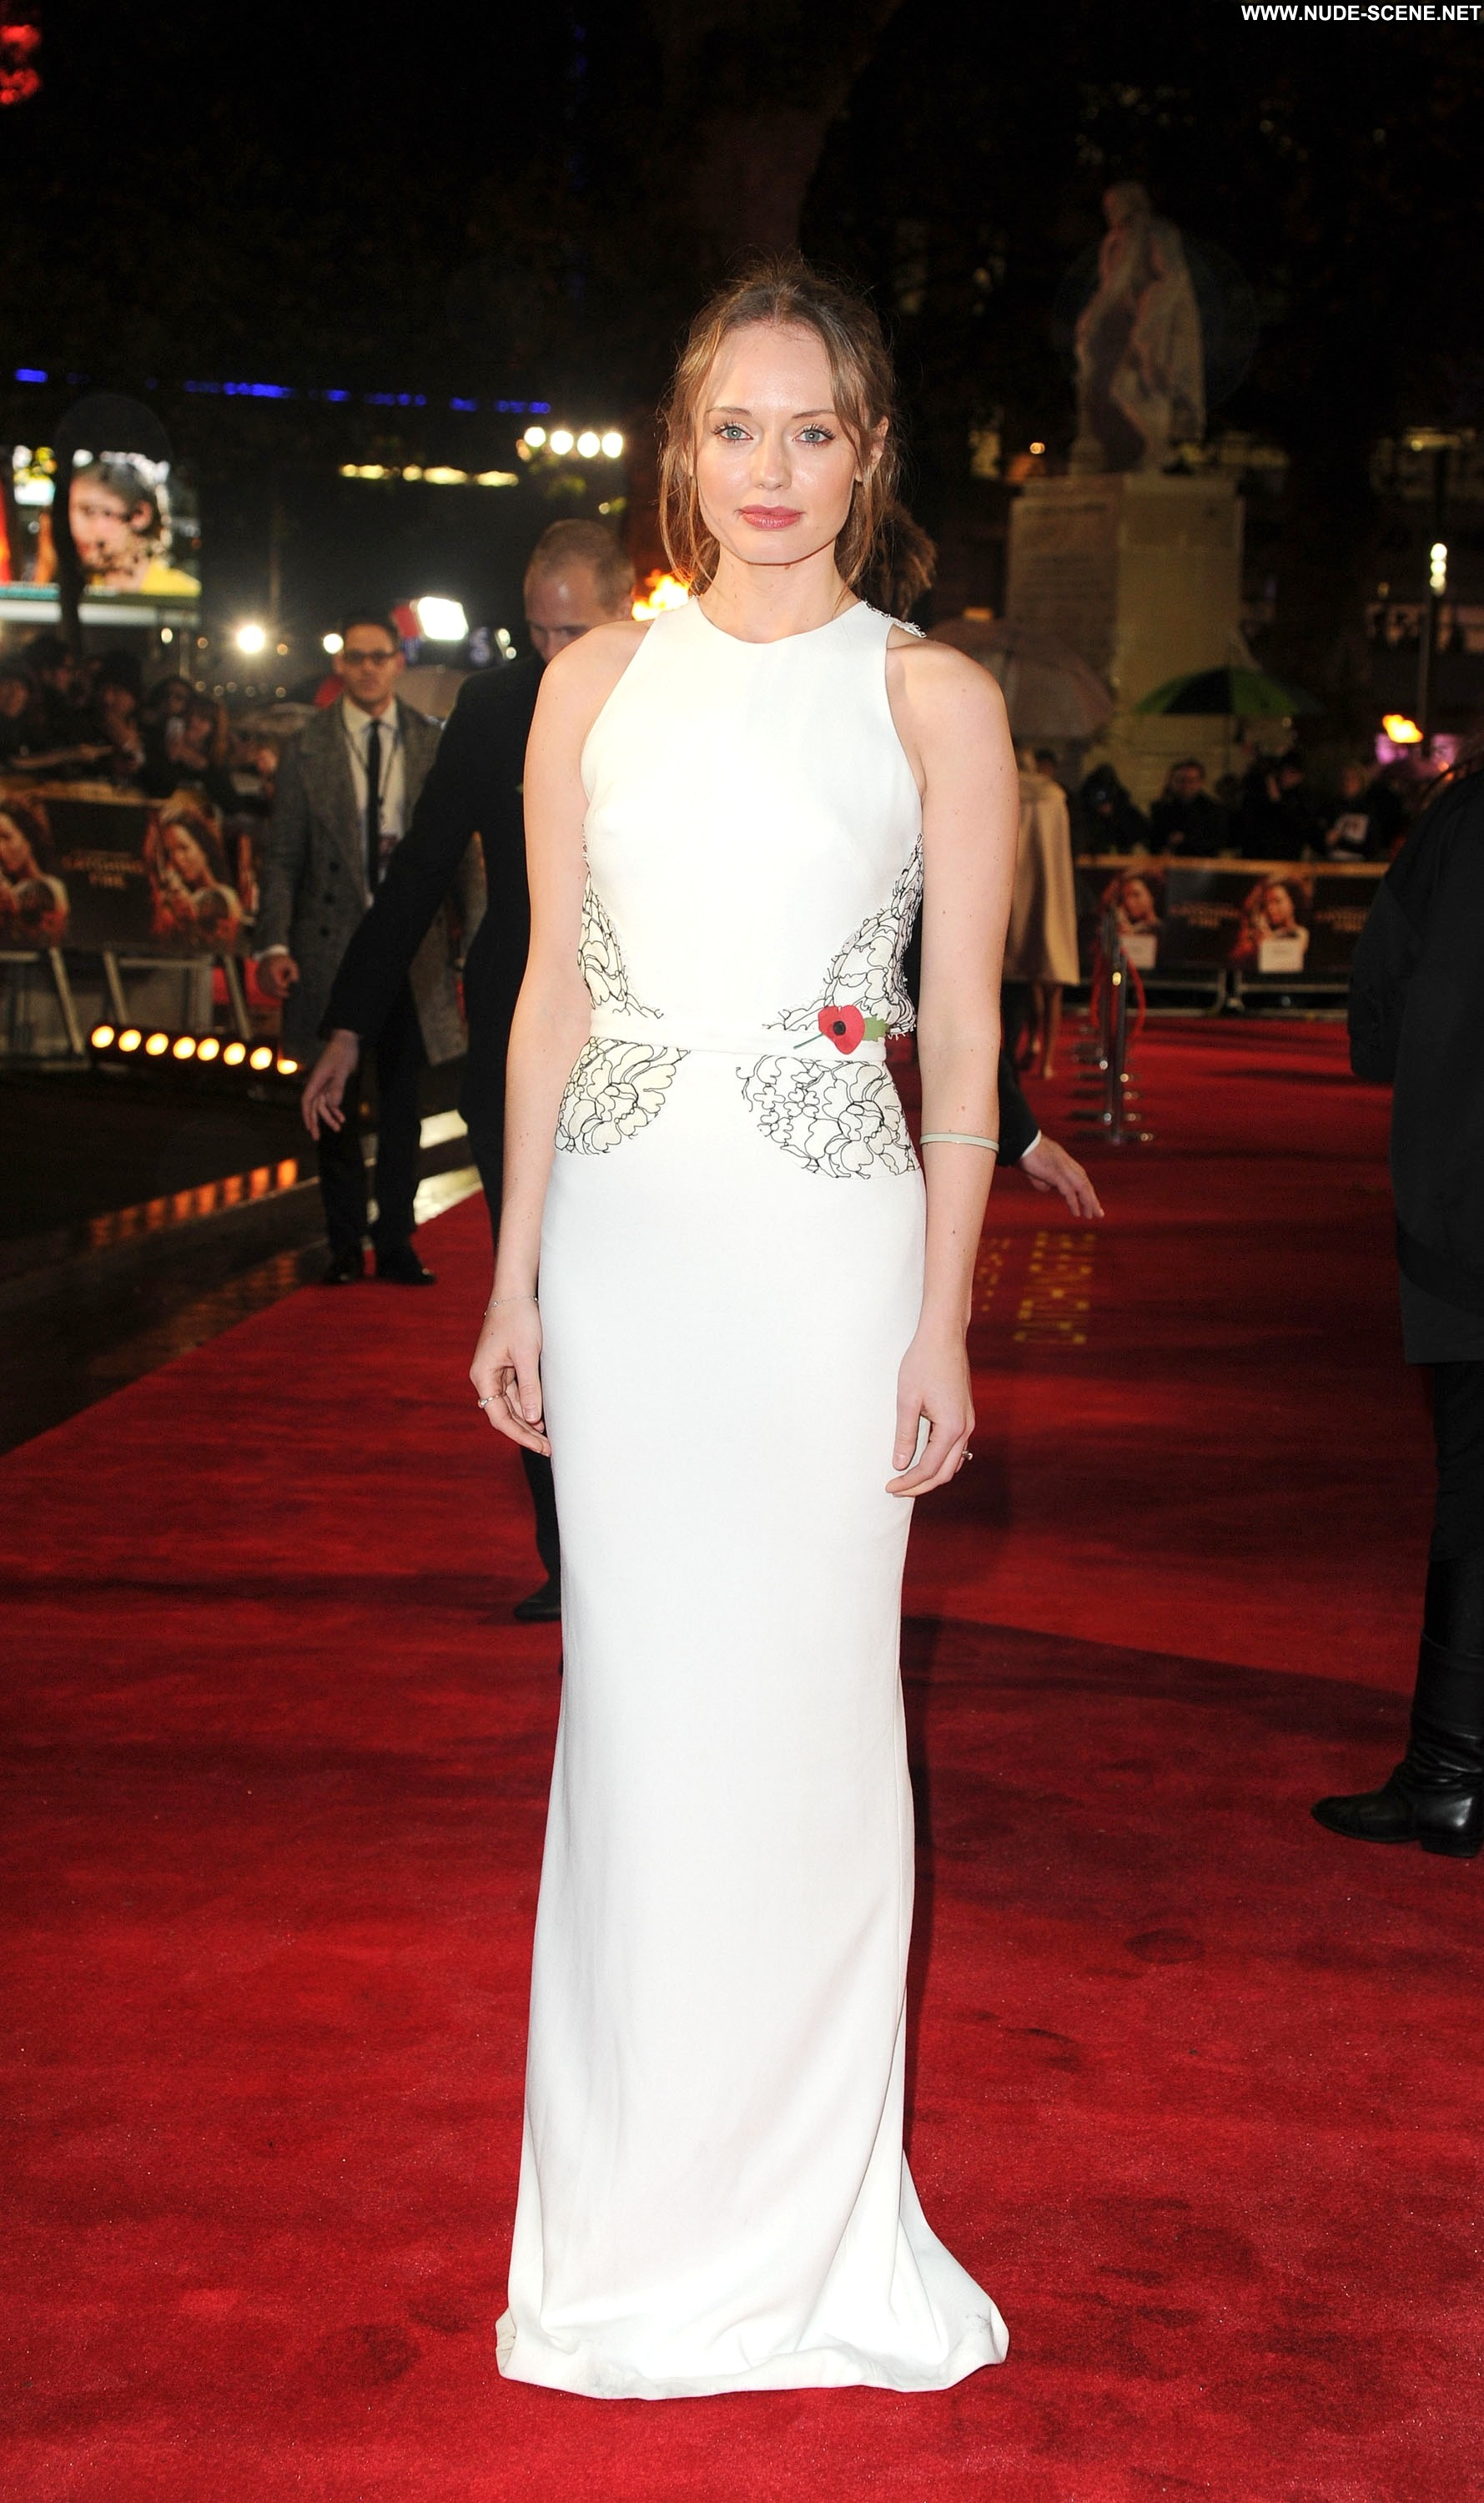 Laura Haddock The Hunger Games The Hunger Games Celebrity